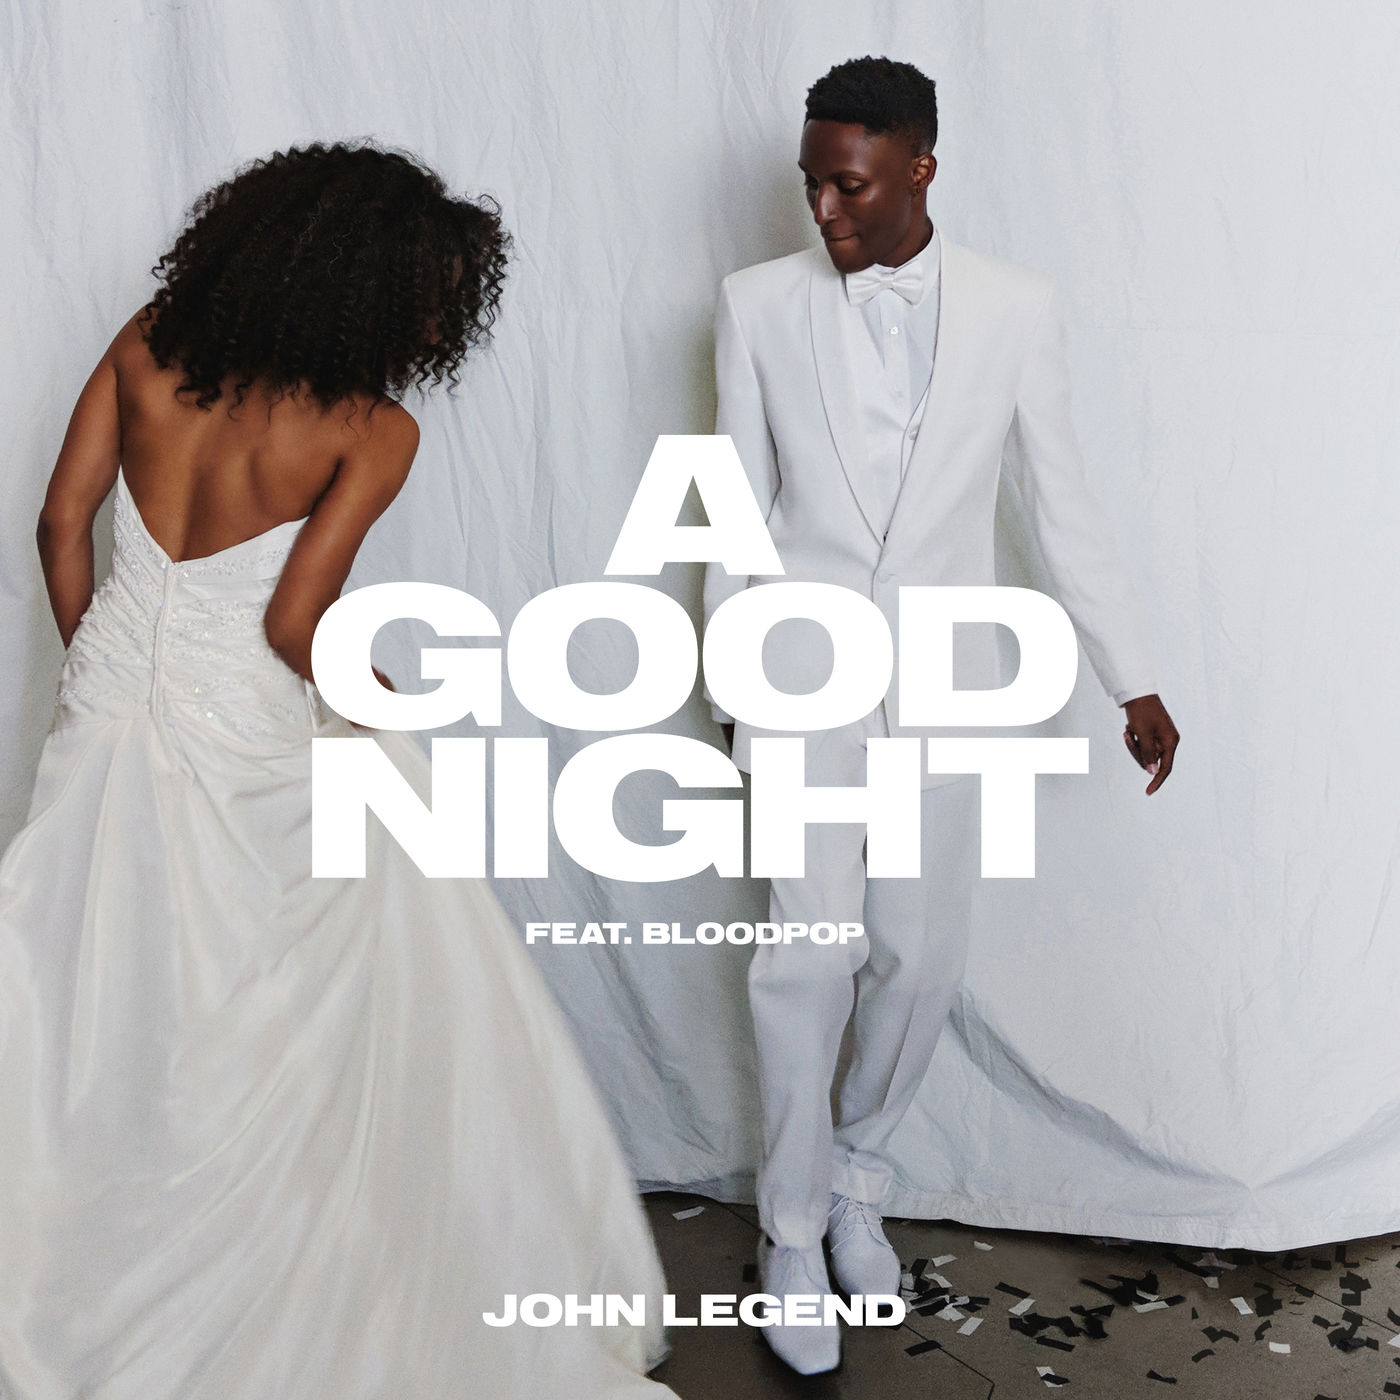 John Legend documents a love story in 'A Good Night'